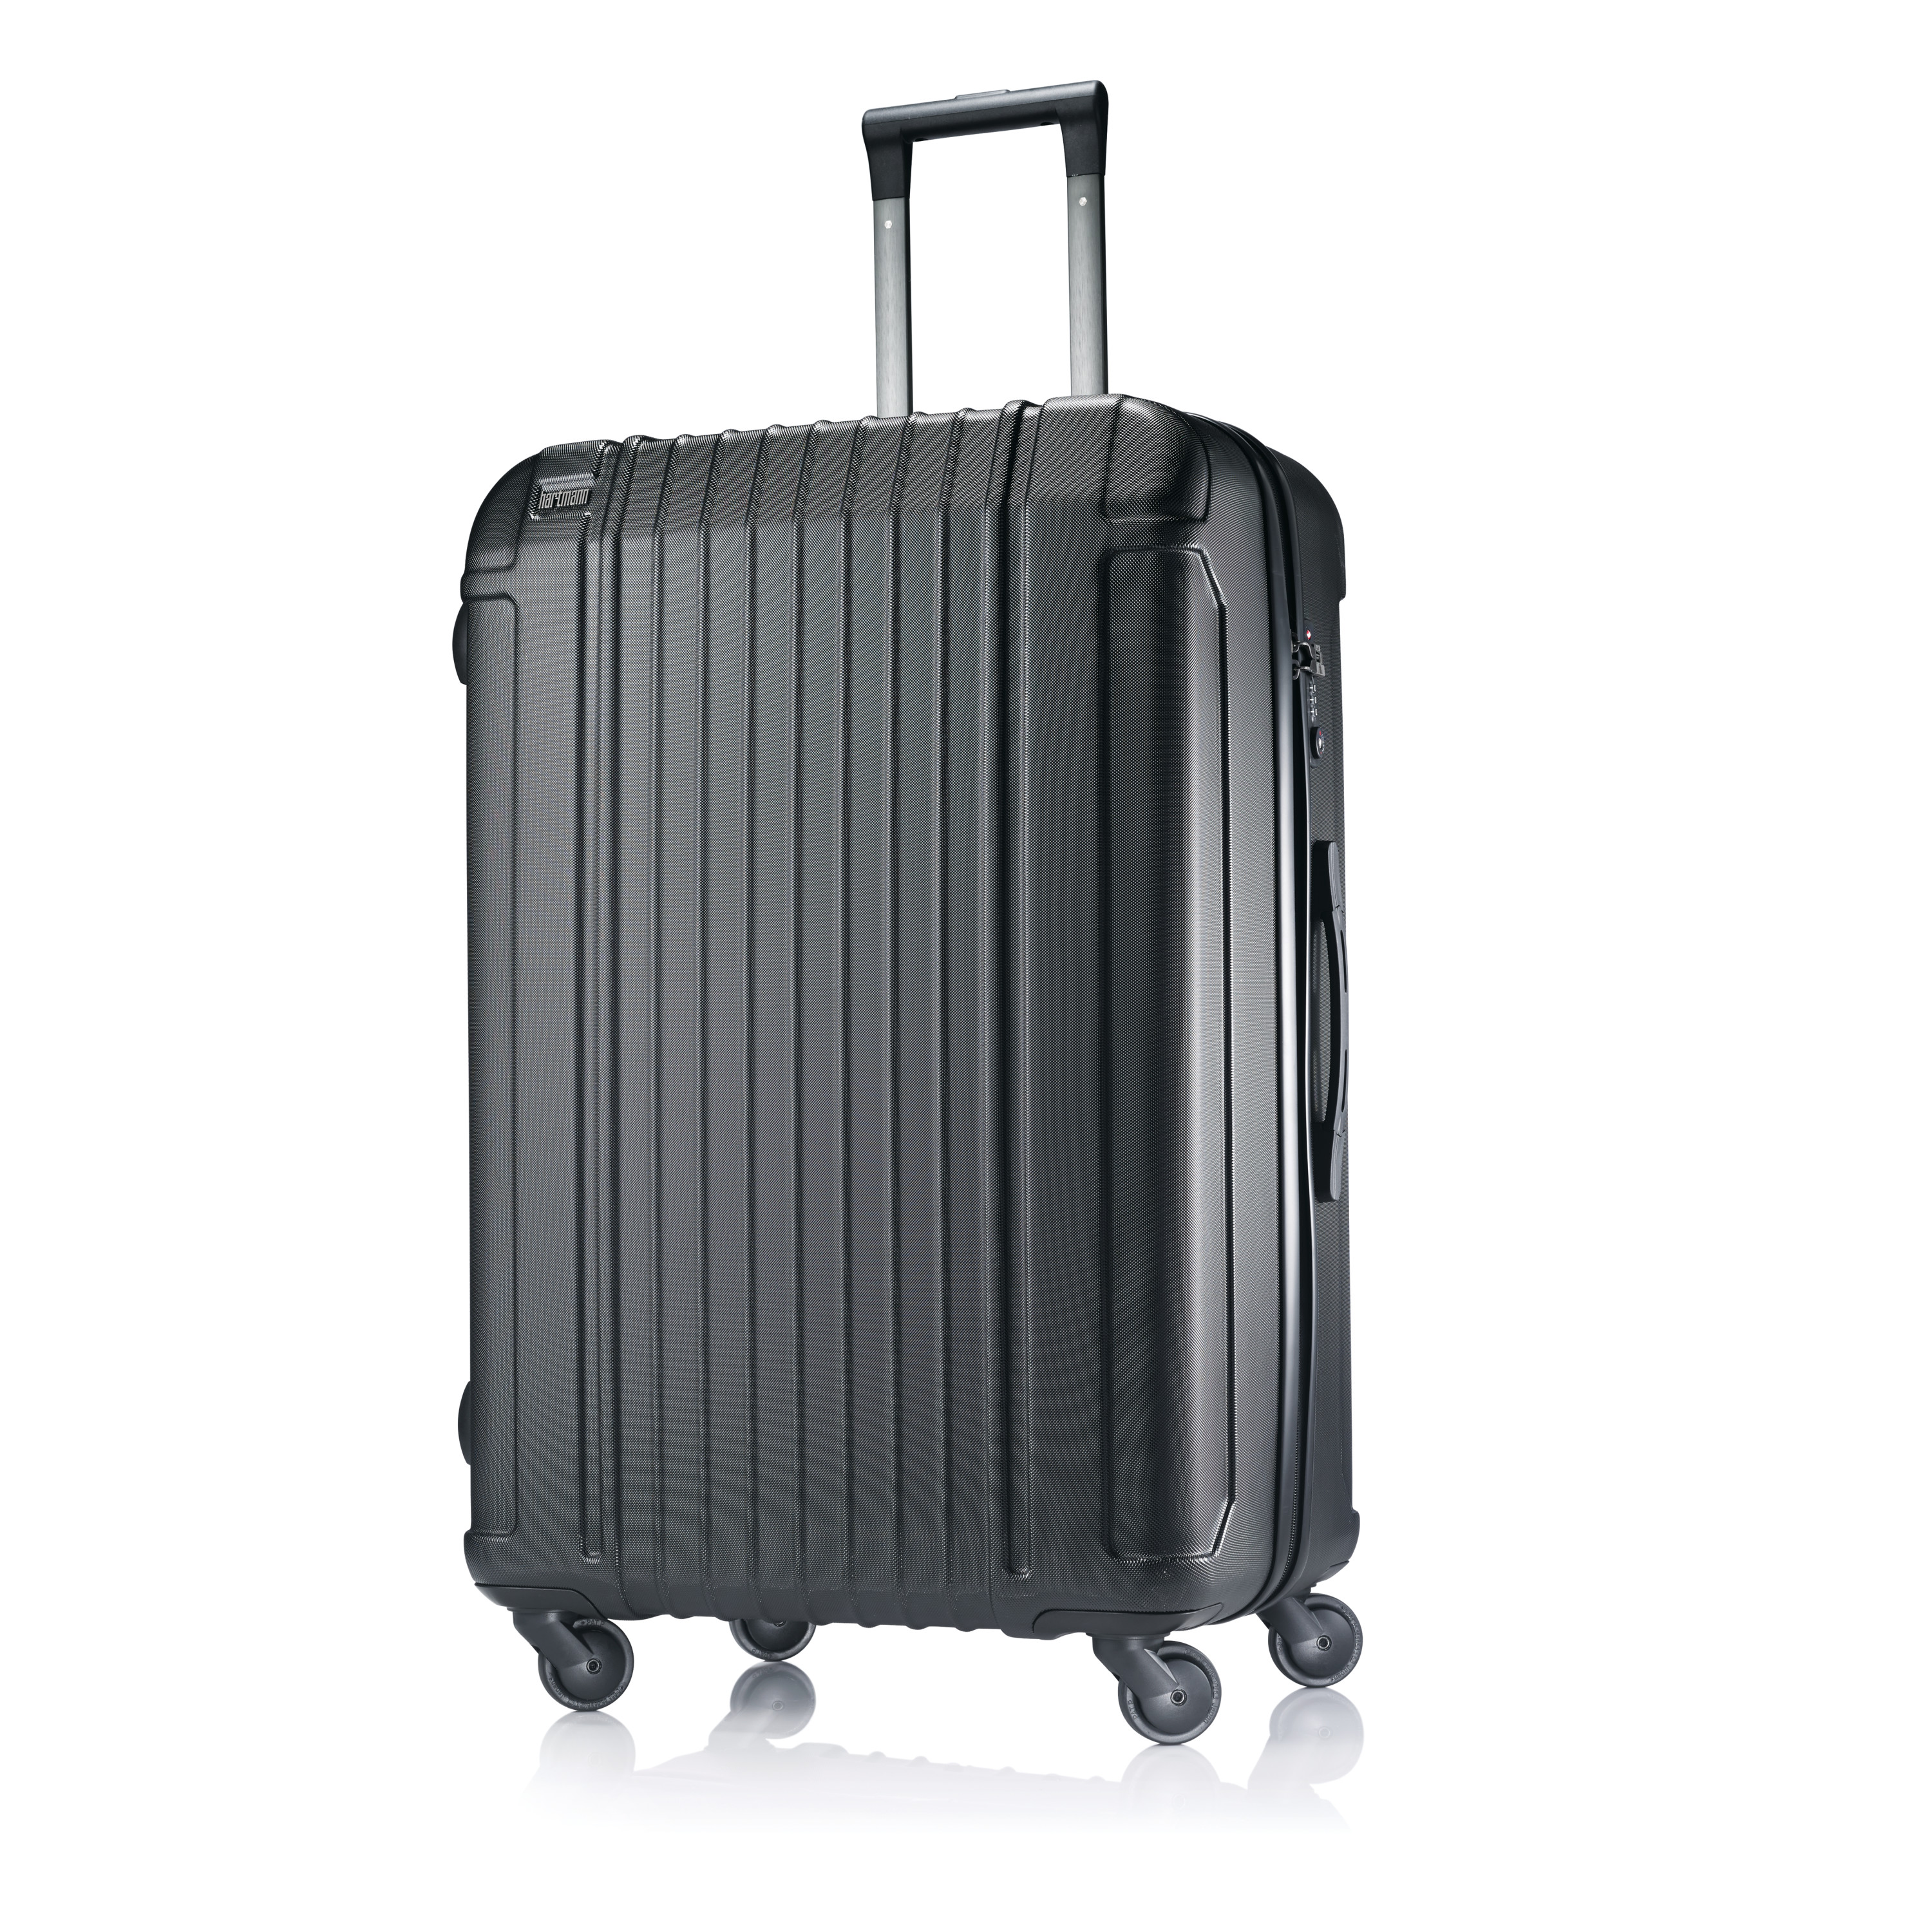 Hartmann Vigor Extended Journey Spinner Luggage Black Vigor's extended journey spinner is designed for the overpacker's longer getaways, and with Vigor's suite of thoughtful features, makes every travel experience enjoyable. 100% Polycarbonate. Iconic Hartmann figure-8 leather handle. Smooth gliding spinner wheels for enhanced mobility. Telescoping handle. Lightweight polyester jacquard lining. Compression straps. Organization compartments. Side zippered inside pockets. Weight: 10.0 lbs. Body Dimensions: 29.0  x 19.5  x 12.0